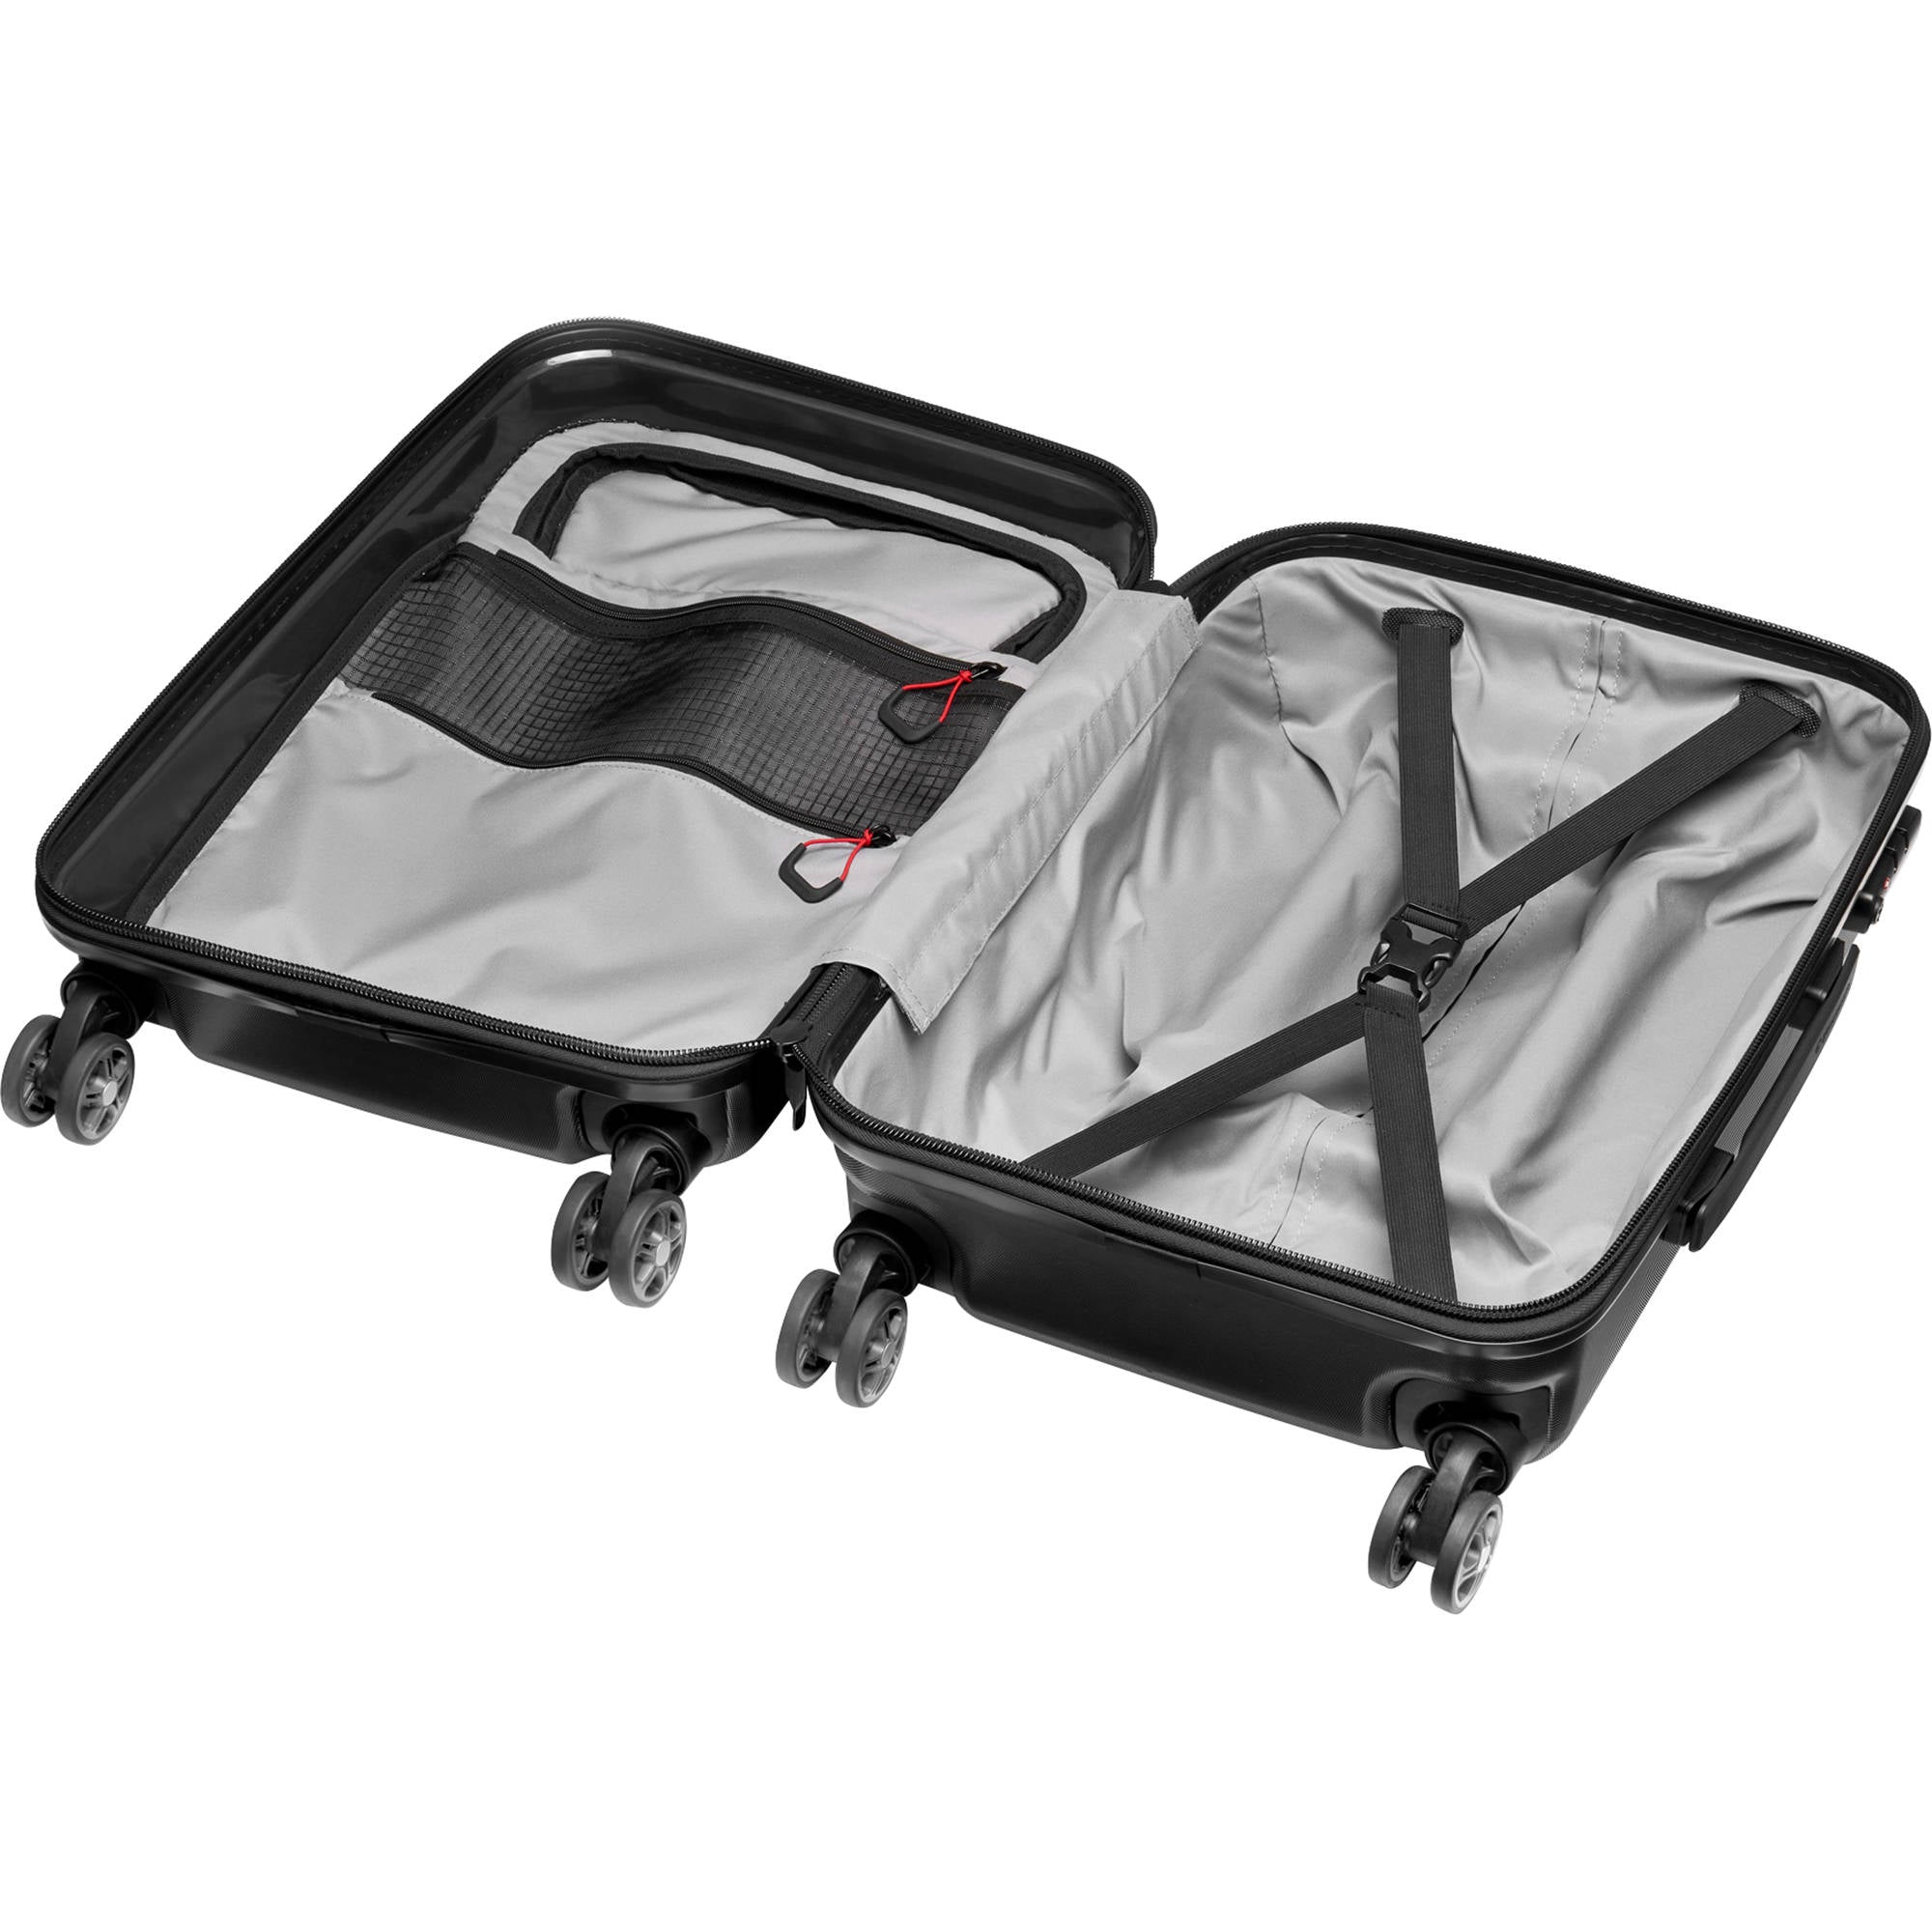 Manfrotto Pro Light Reloader Spin-55 Carry-On Camera Roller Bag (Black)